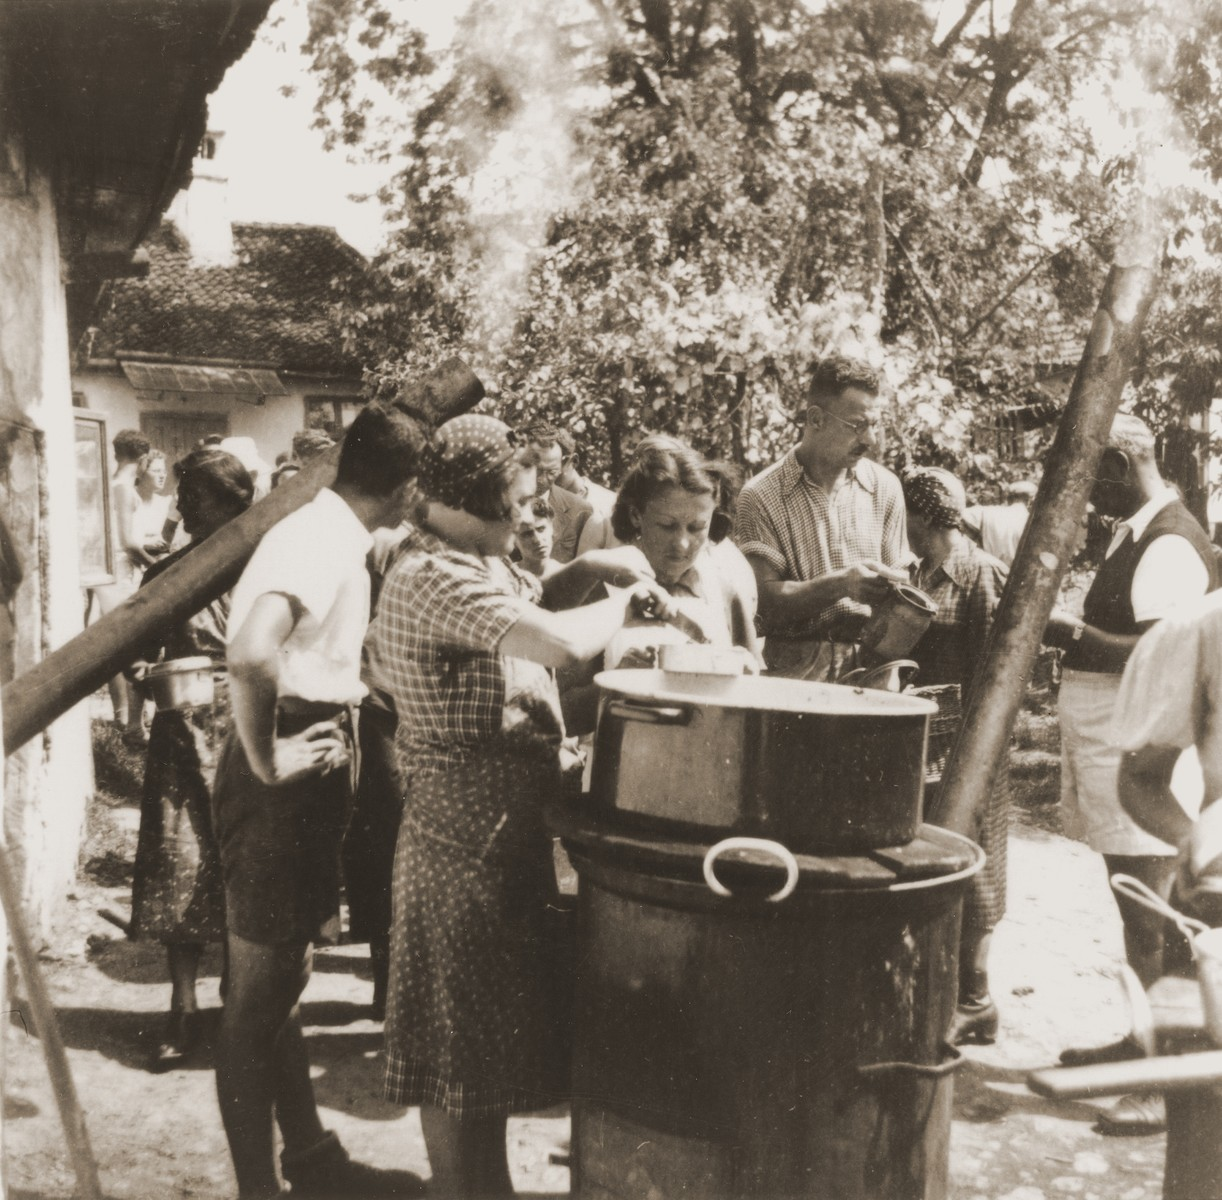 Jewish refugees from the Kladovo transport queue up to receive a meal at a refugee camp.